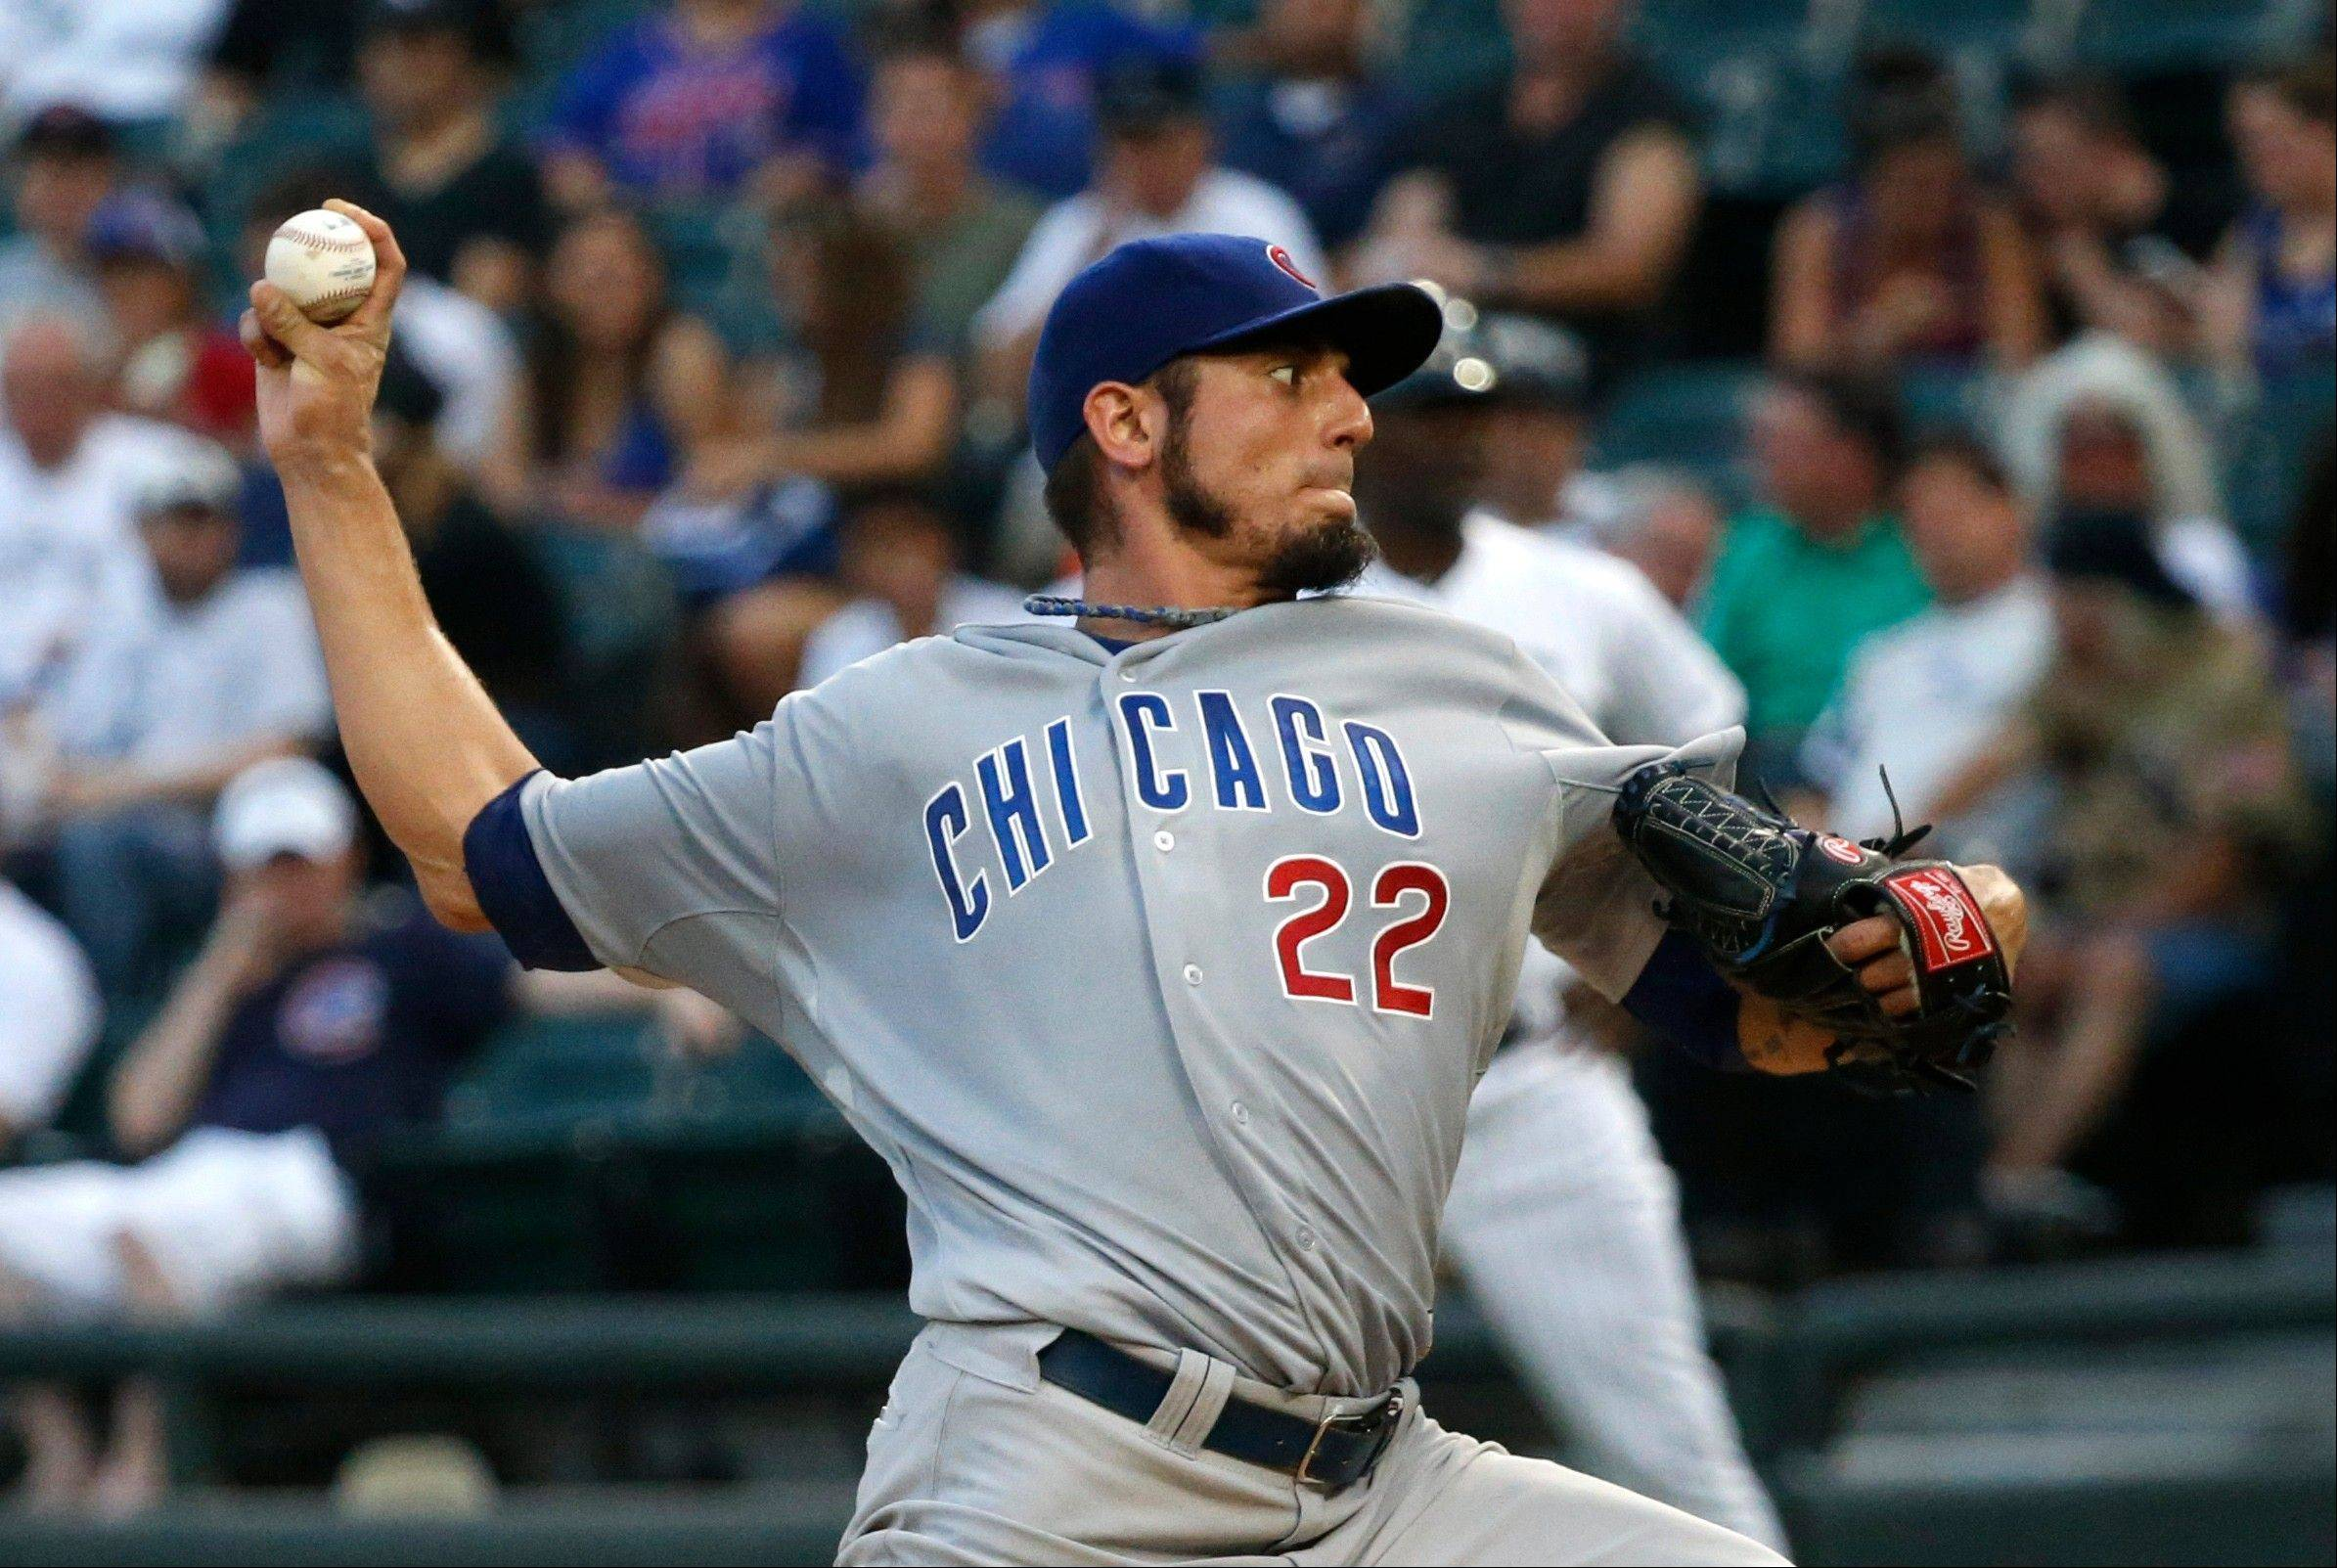 Garza still likely to be gone from Cubs soon